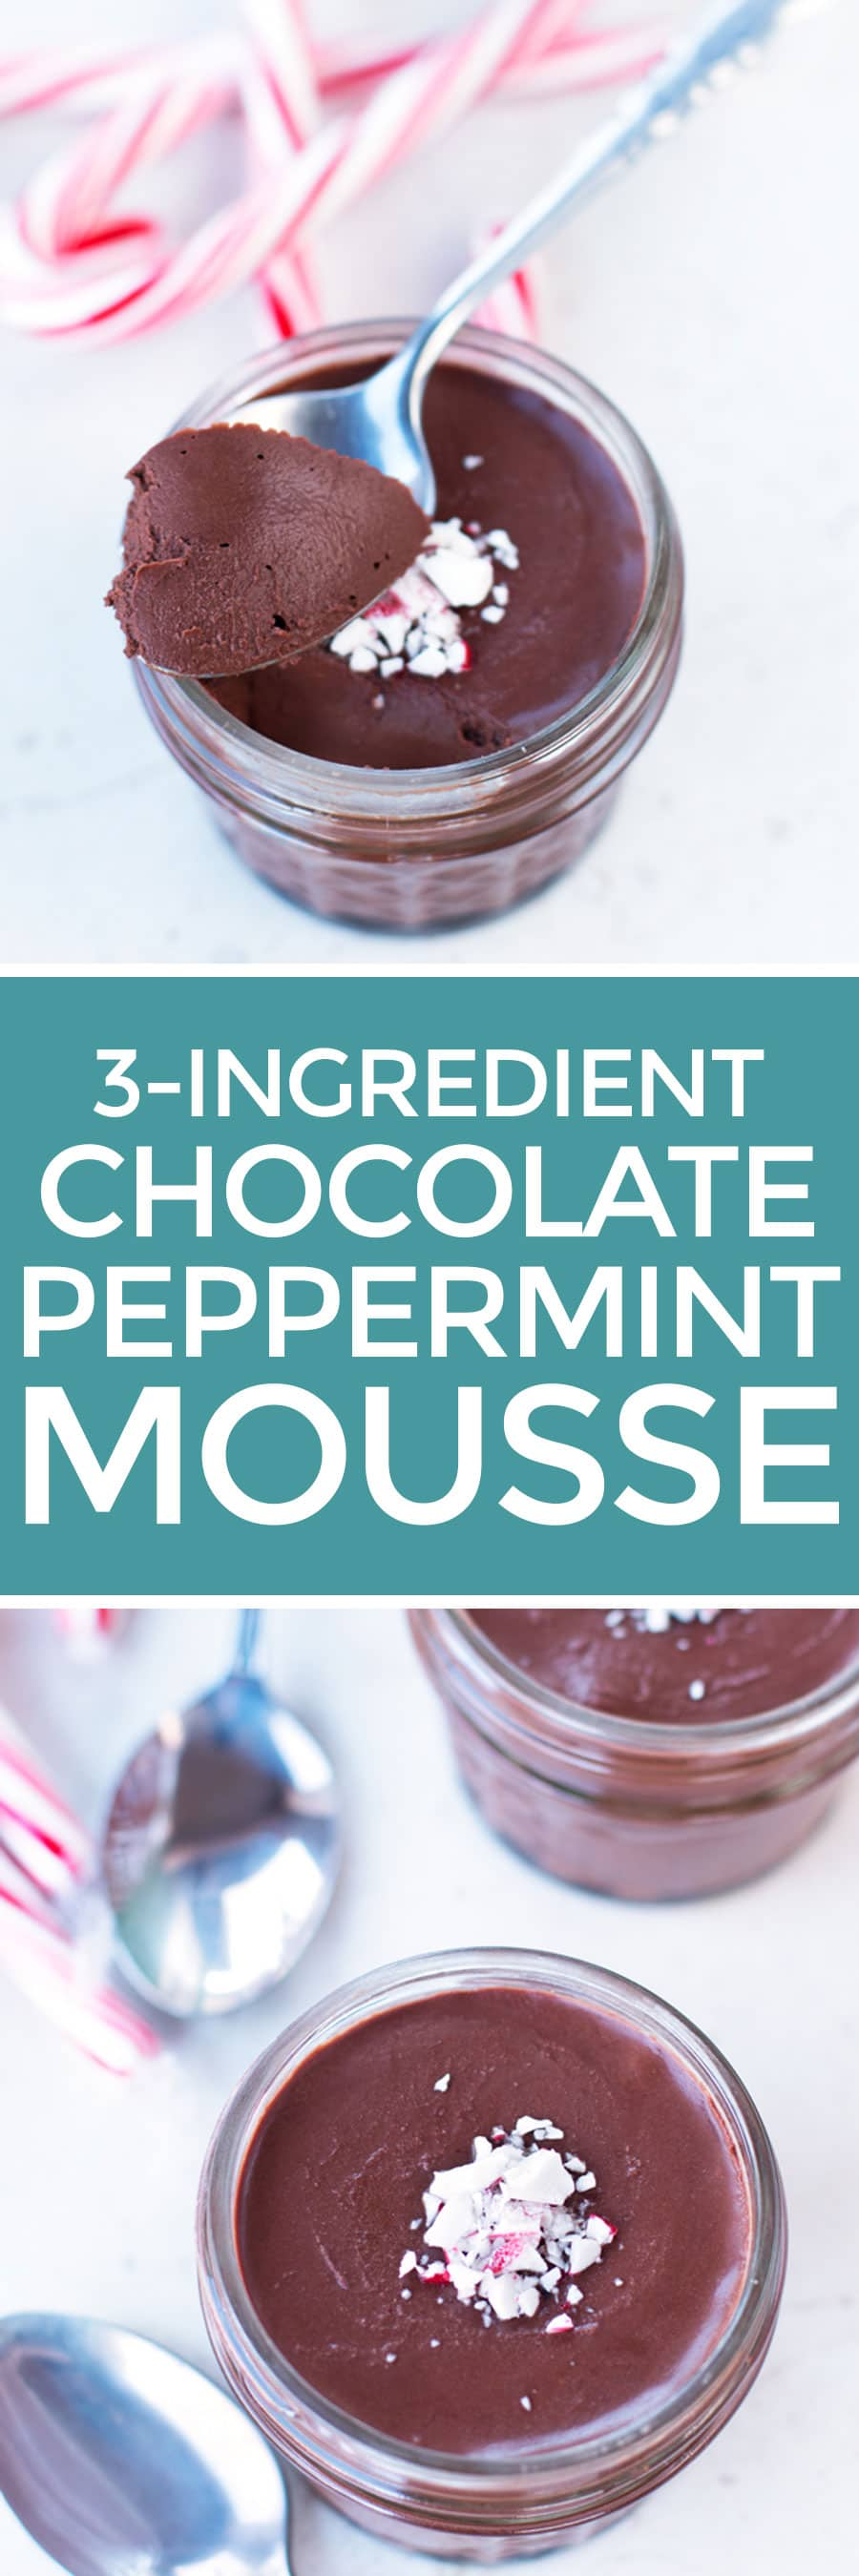 3-Ingredient Dark Chocolate Peppermint Mousse | cakenknife.com